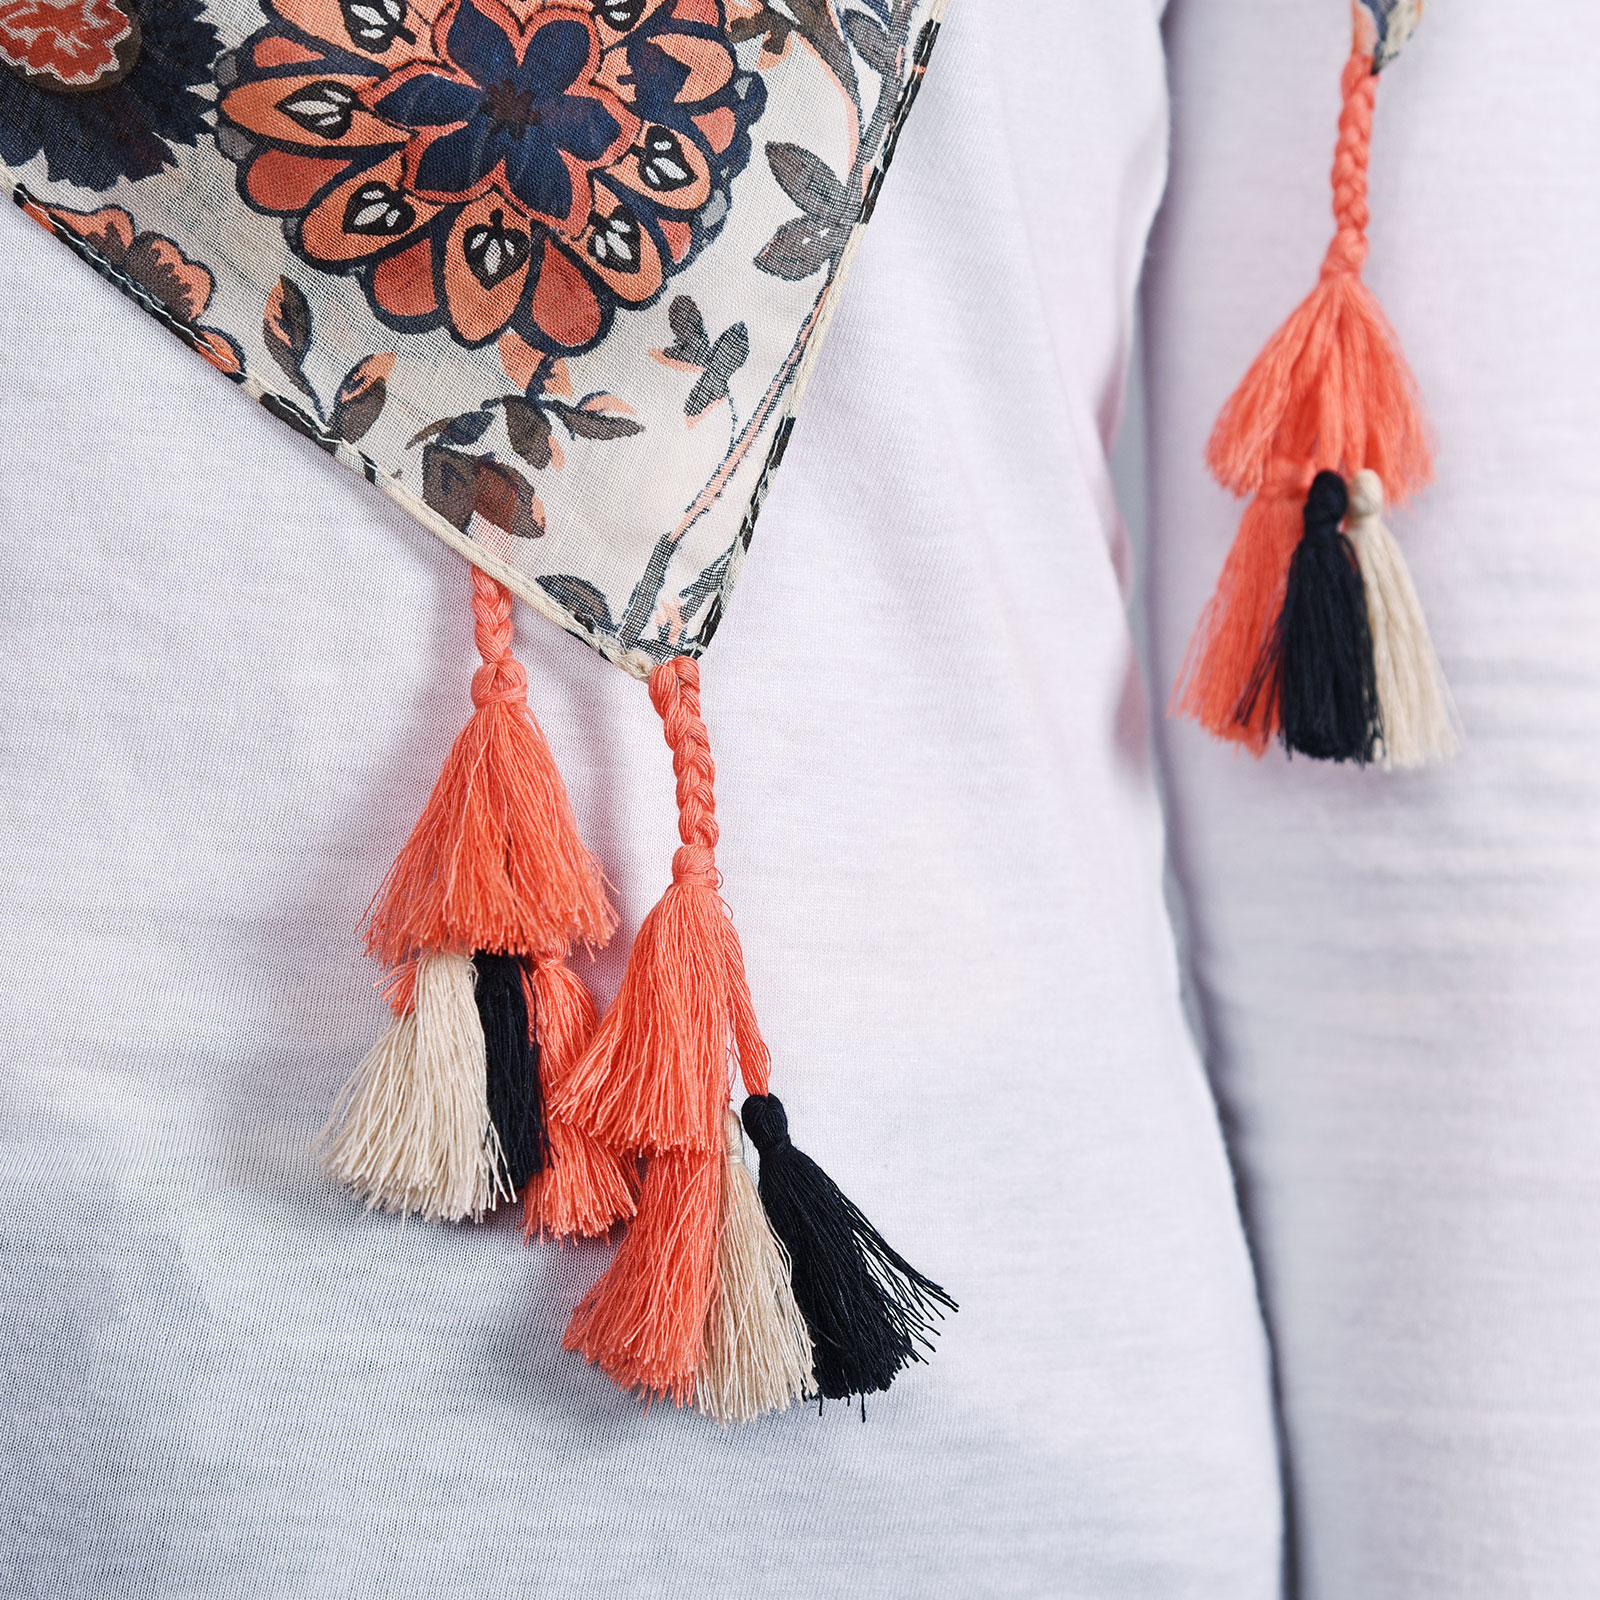 AT-04336-VF16-2-foulard-pompons-corail